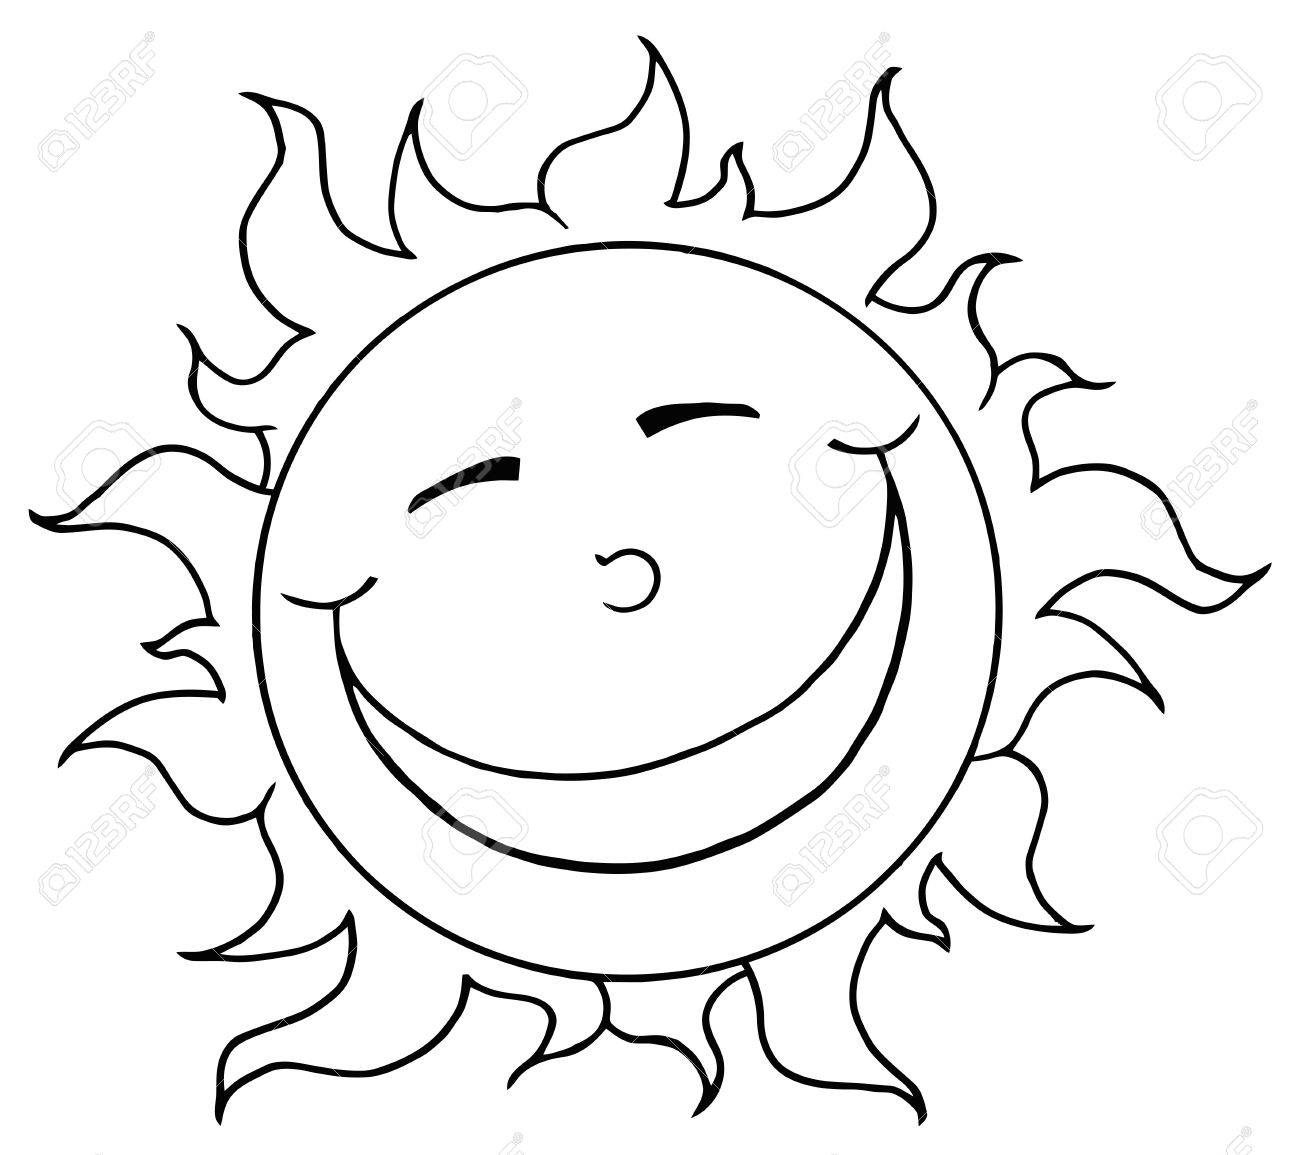 Outlined Smiling Sun Mascot Cartoon Character Stock Vector - 8930278